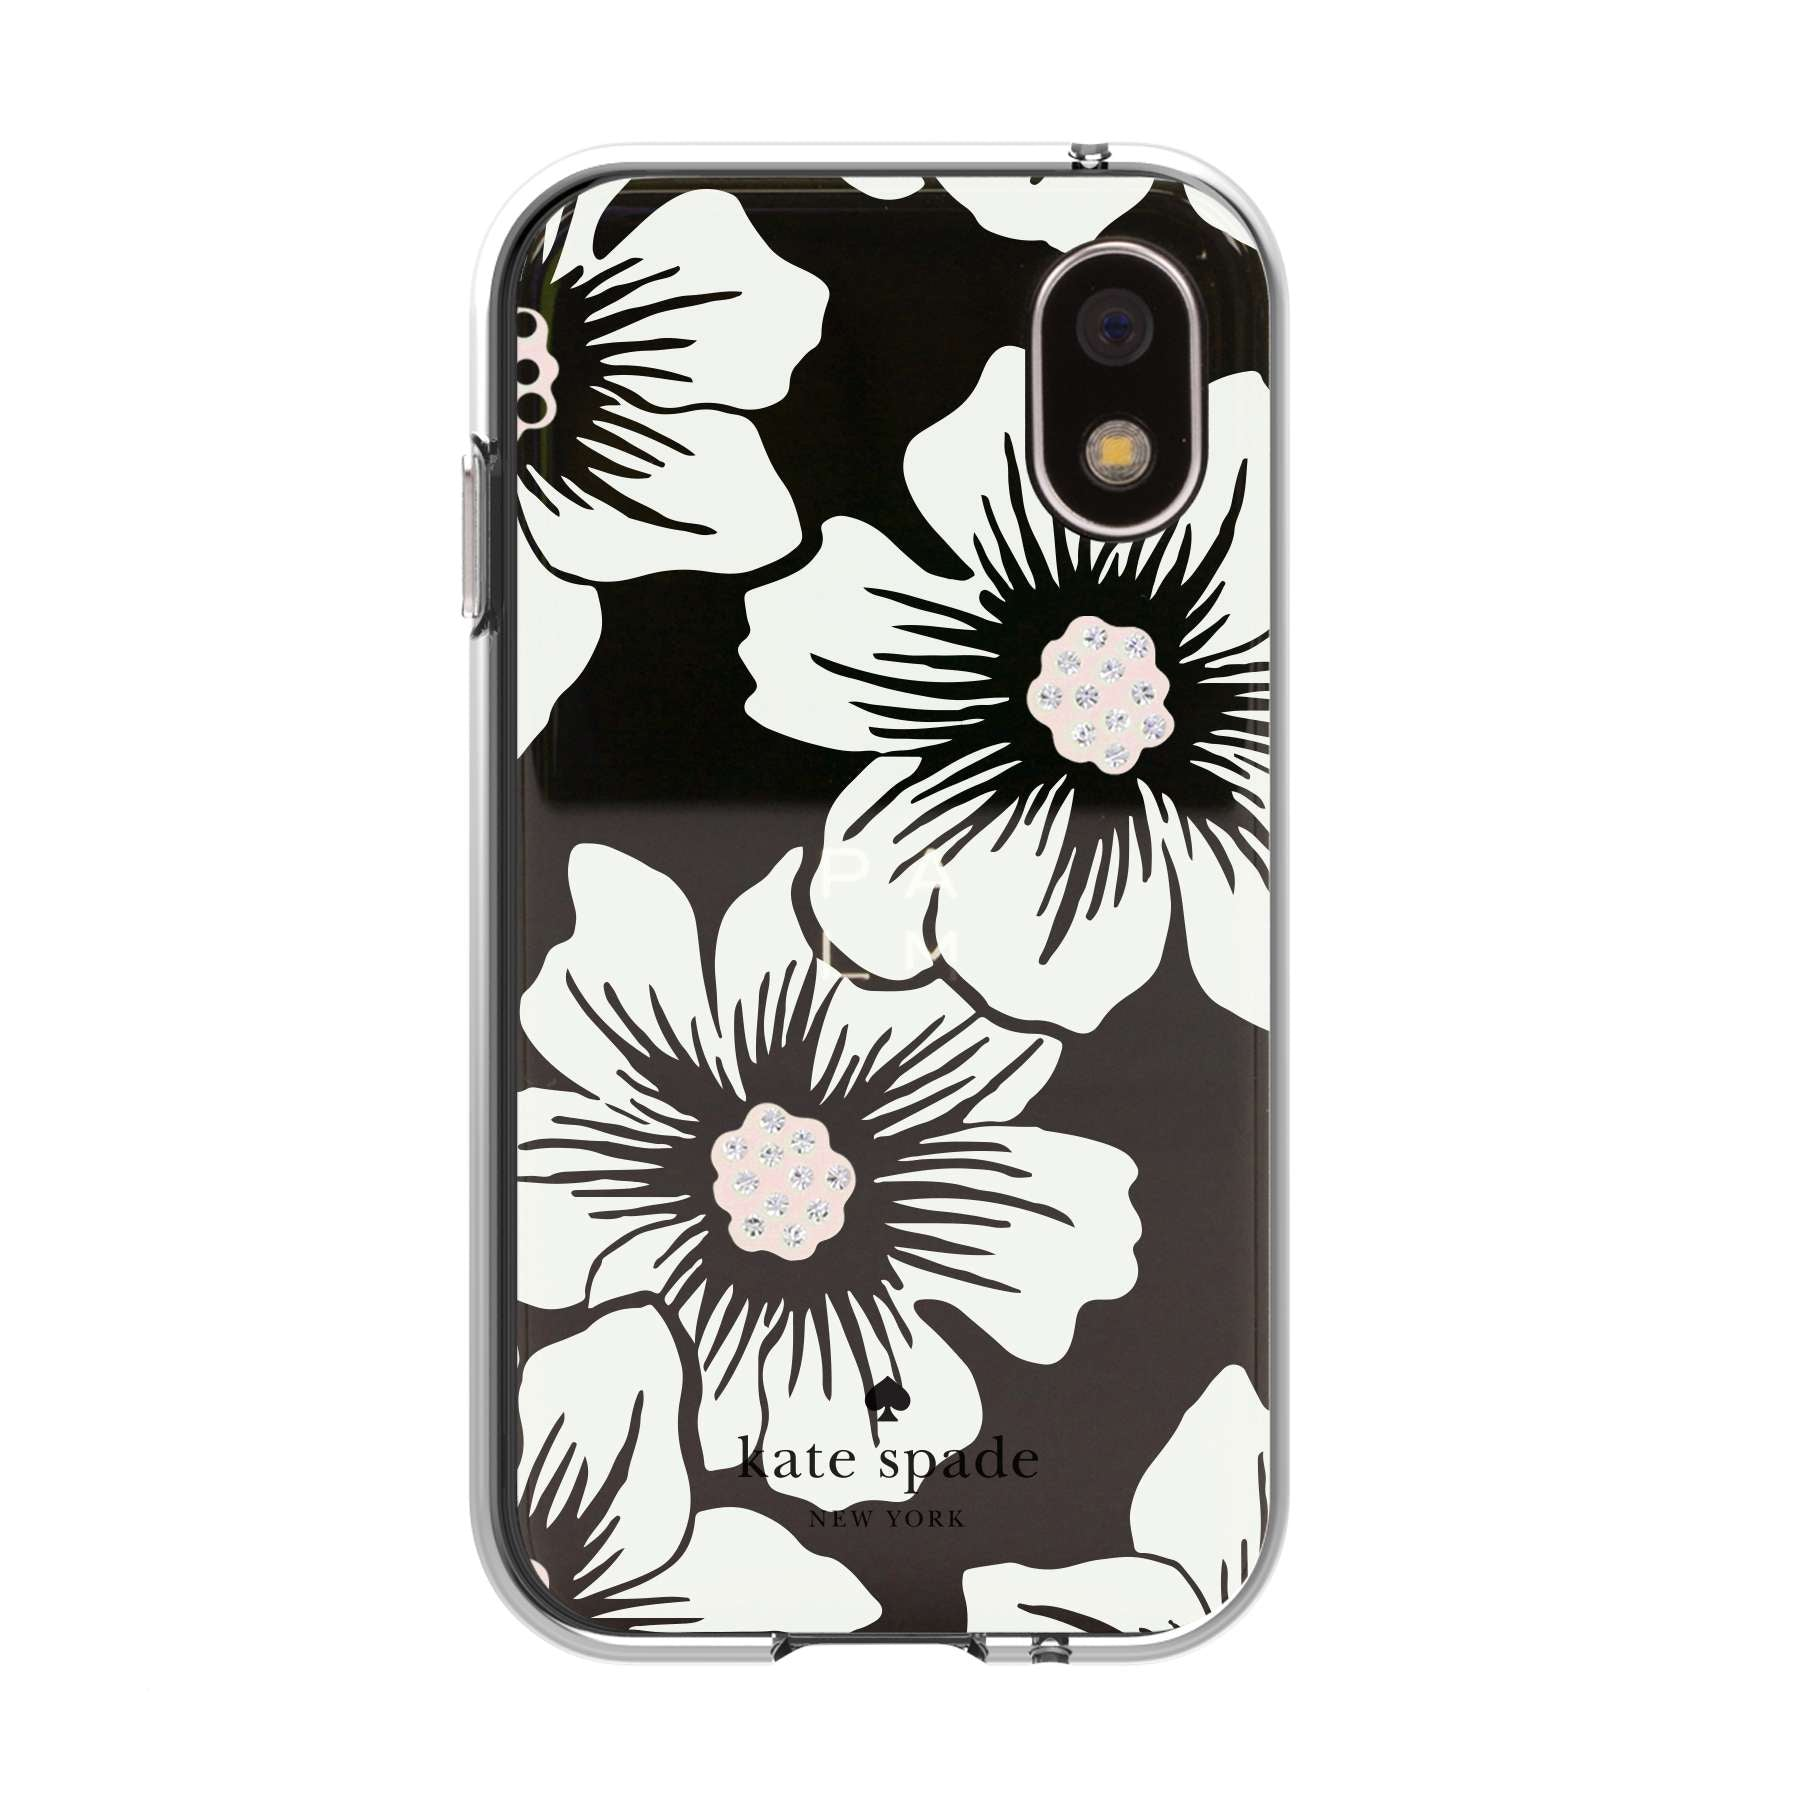 kate spade new york - Flexible Hardshell case for Palm Phone / ケース - FOX STORE